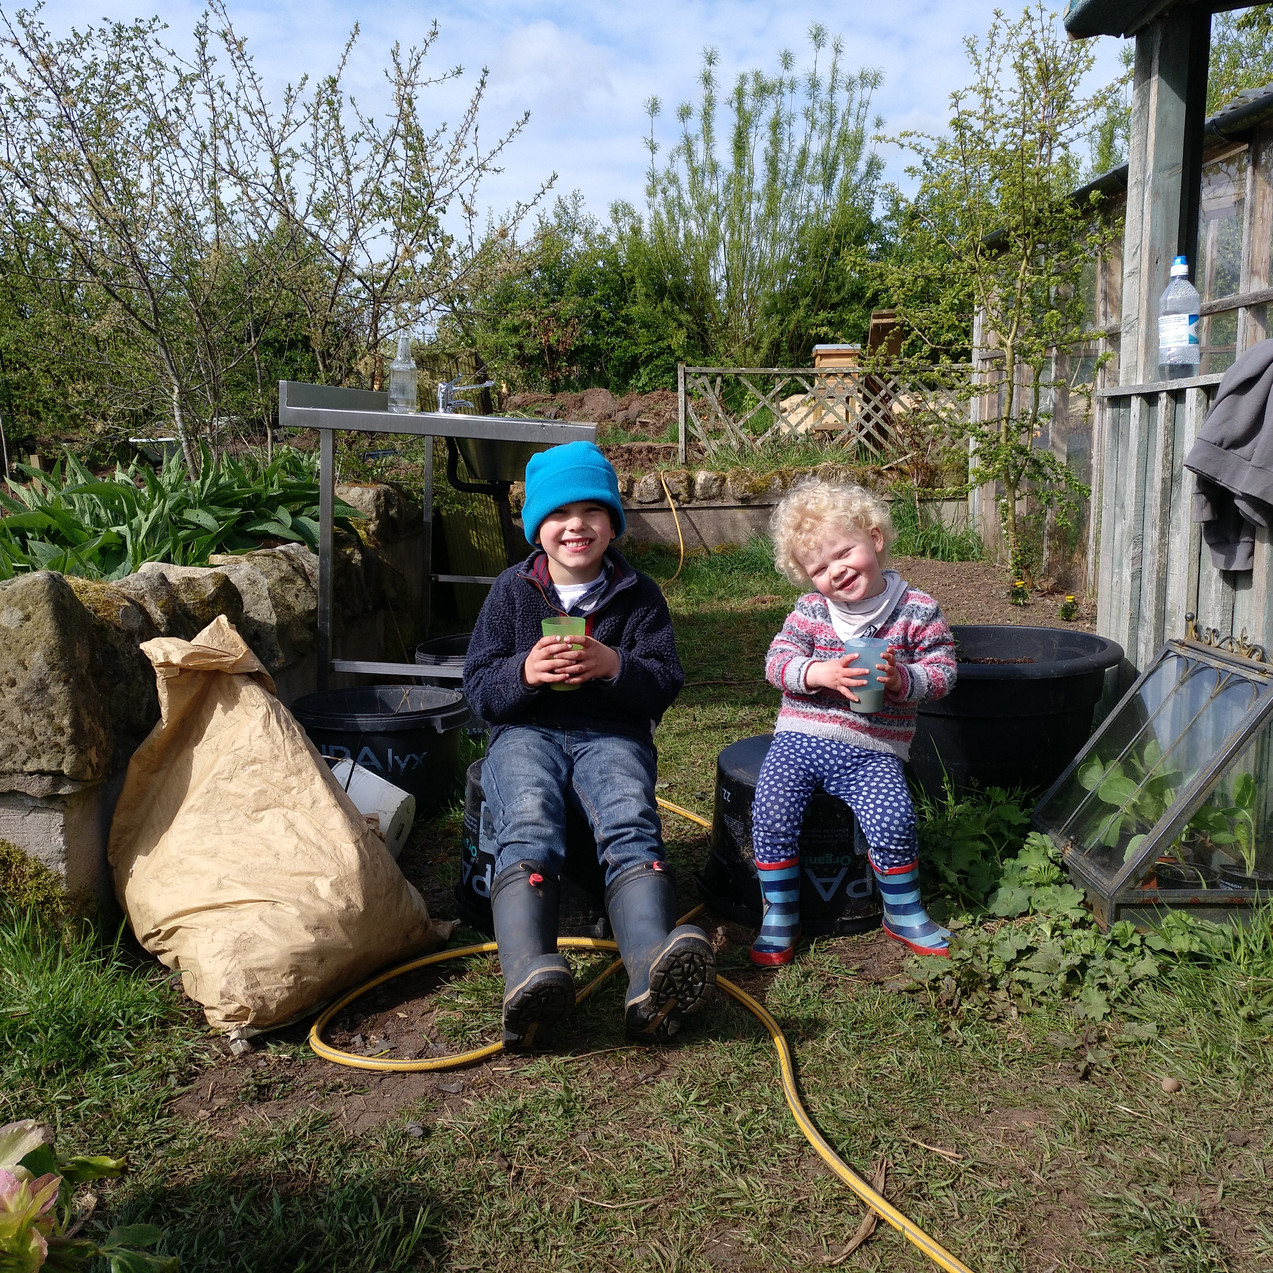 Two of the farm labourers enjoying morning hot chocolate